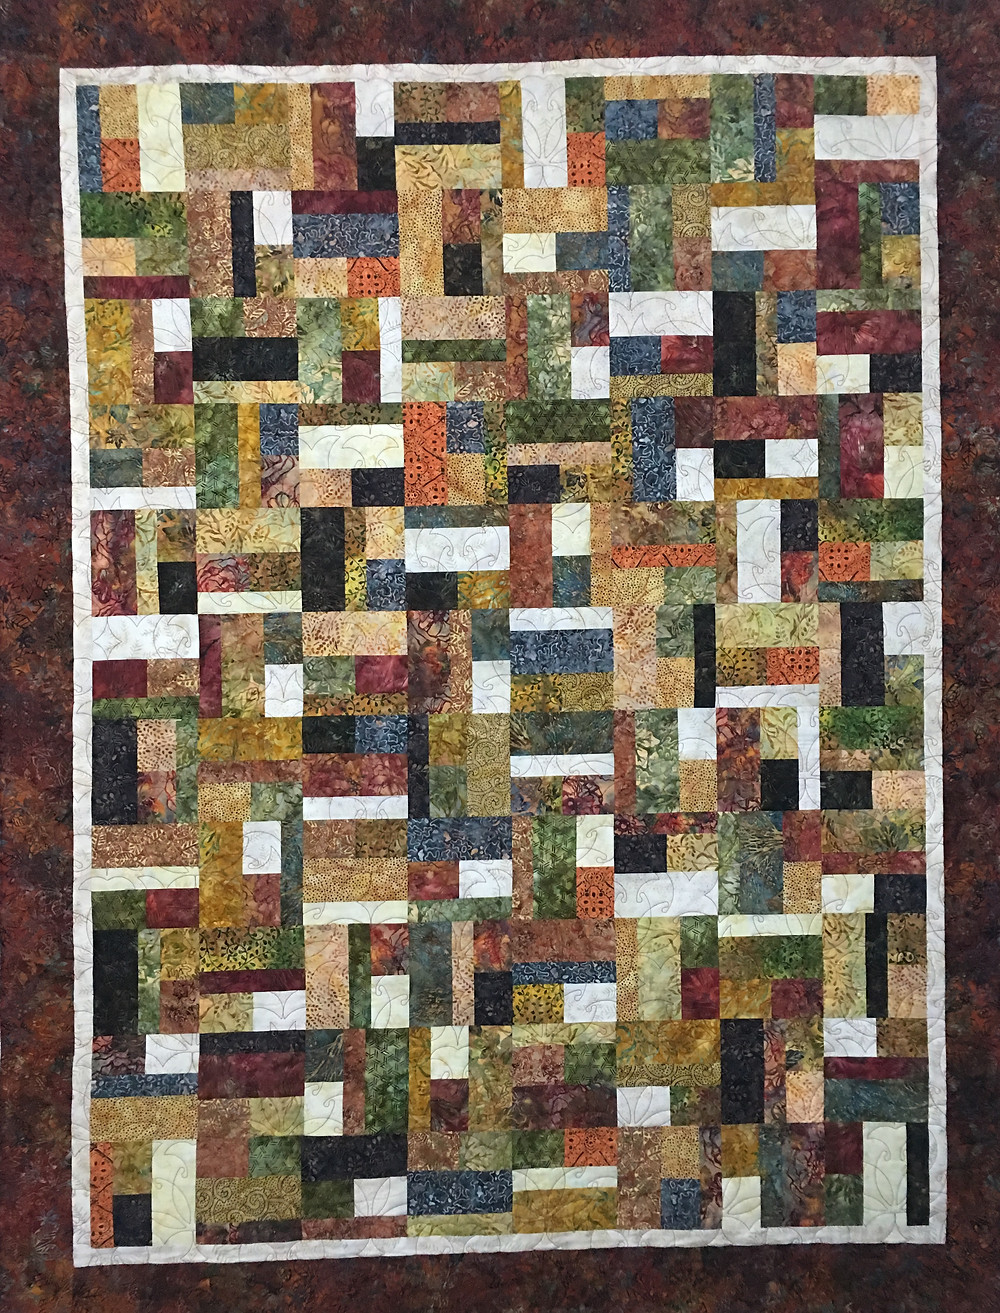 Bits and Pieces Quilt by Aline Babin